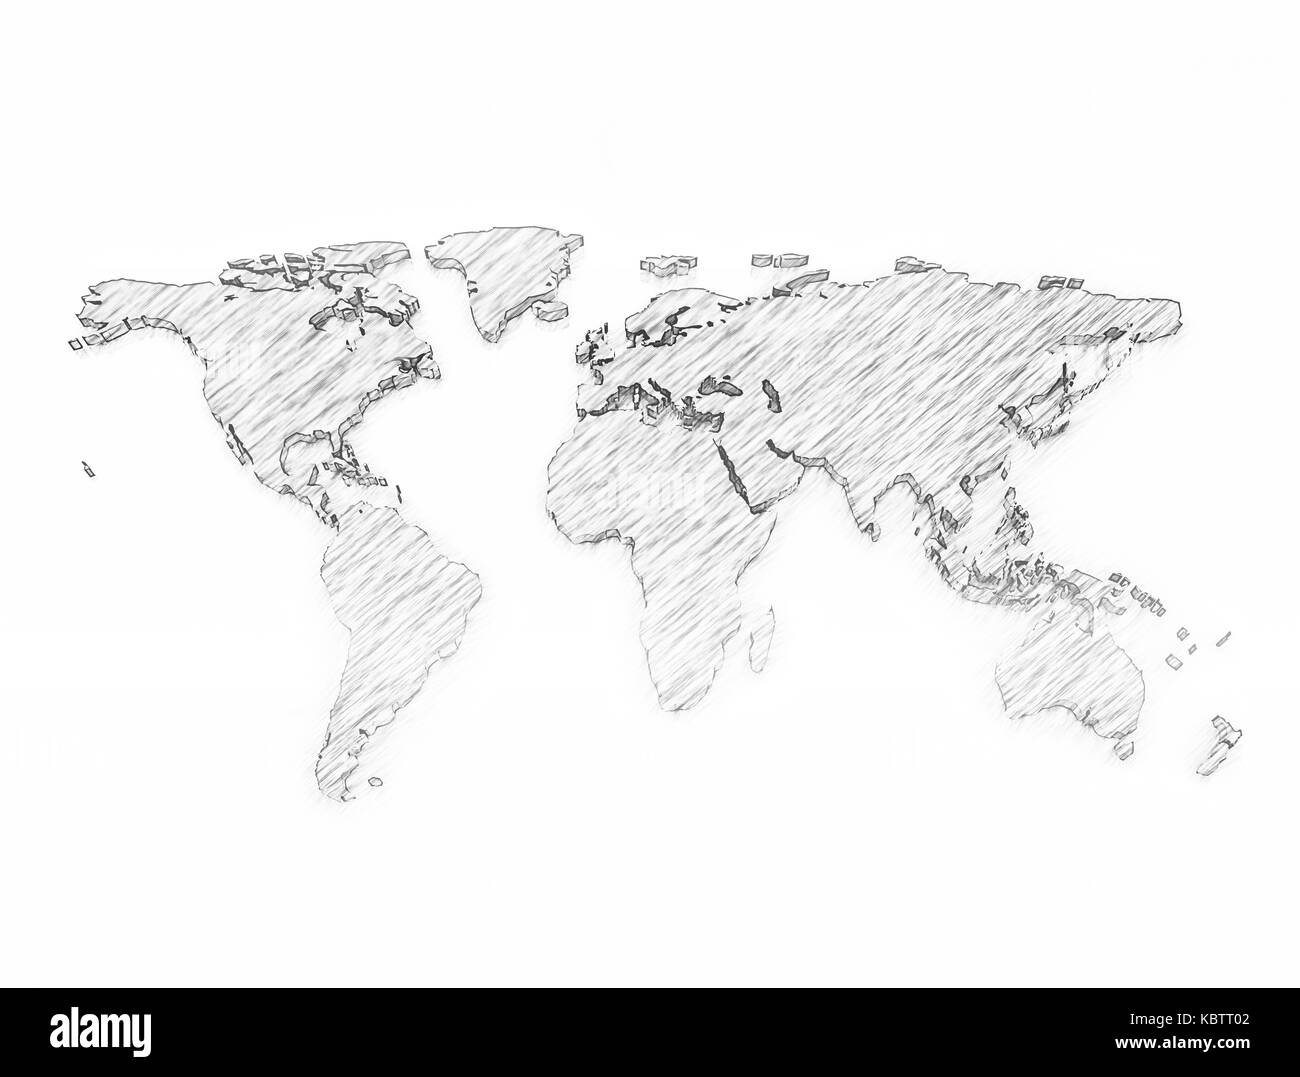 World Map 3d Pencil Sketch Isolated On White Background   Stock Image